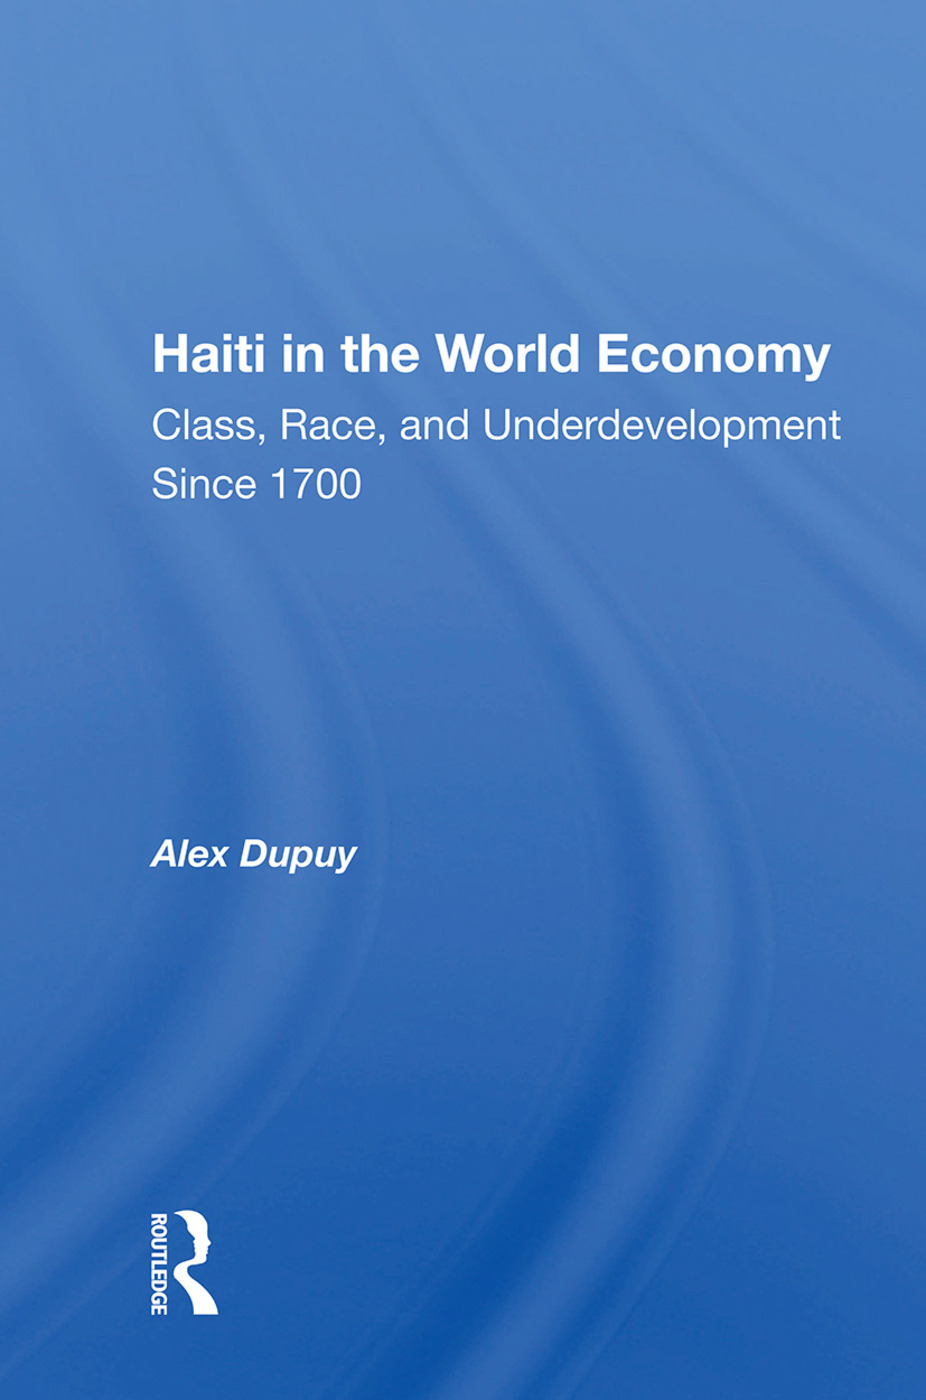 Haiti In The World Economy: Class, Race, And Underdevelopment Since 1700 book cover